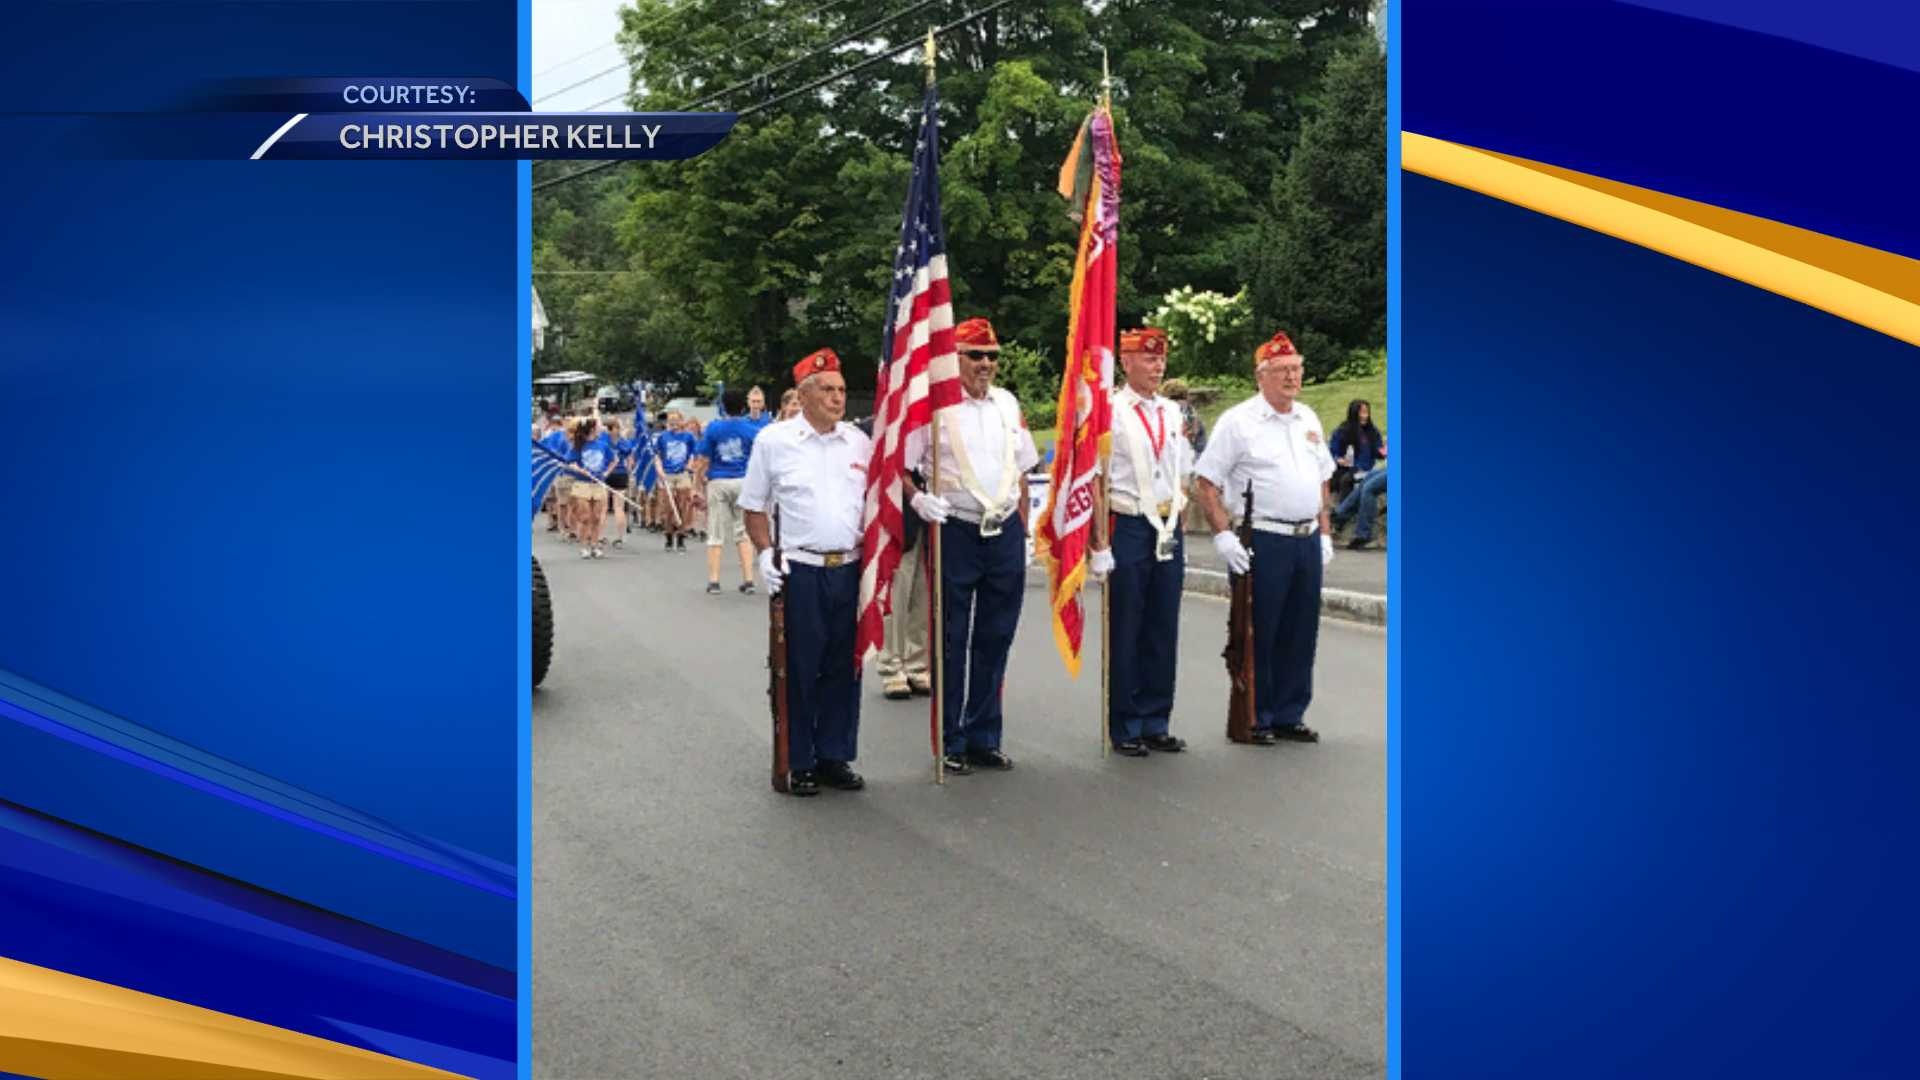 Meredith holds parade to mark town's 250th anniversary